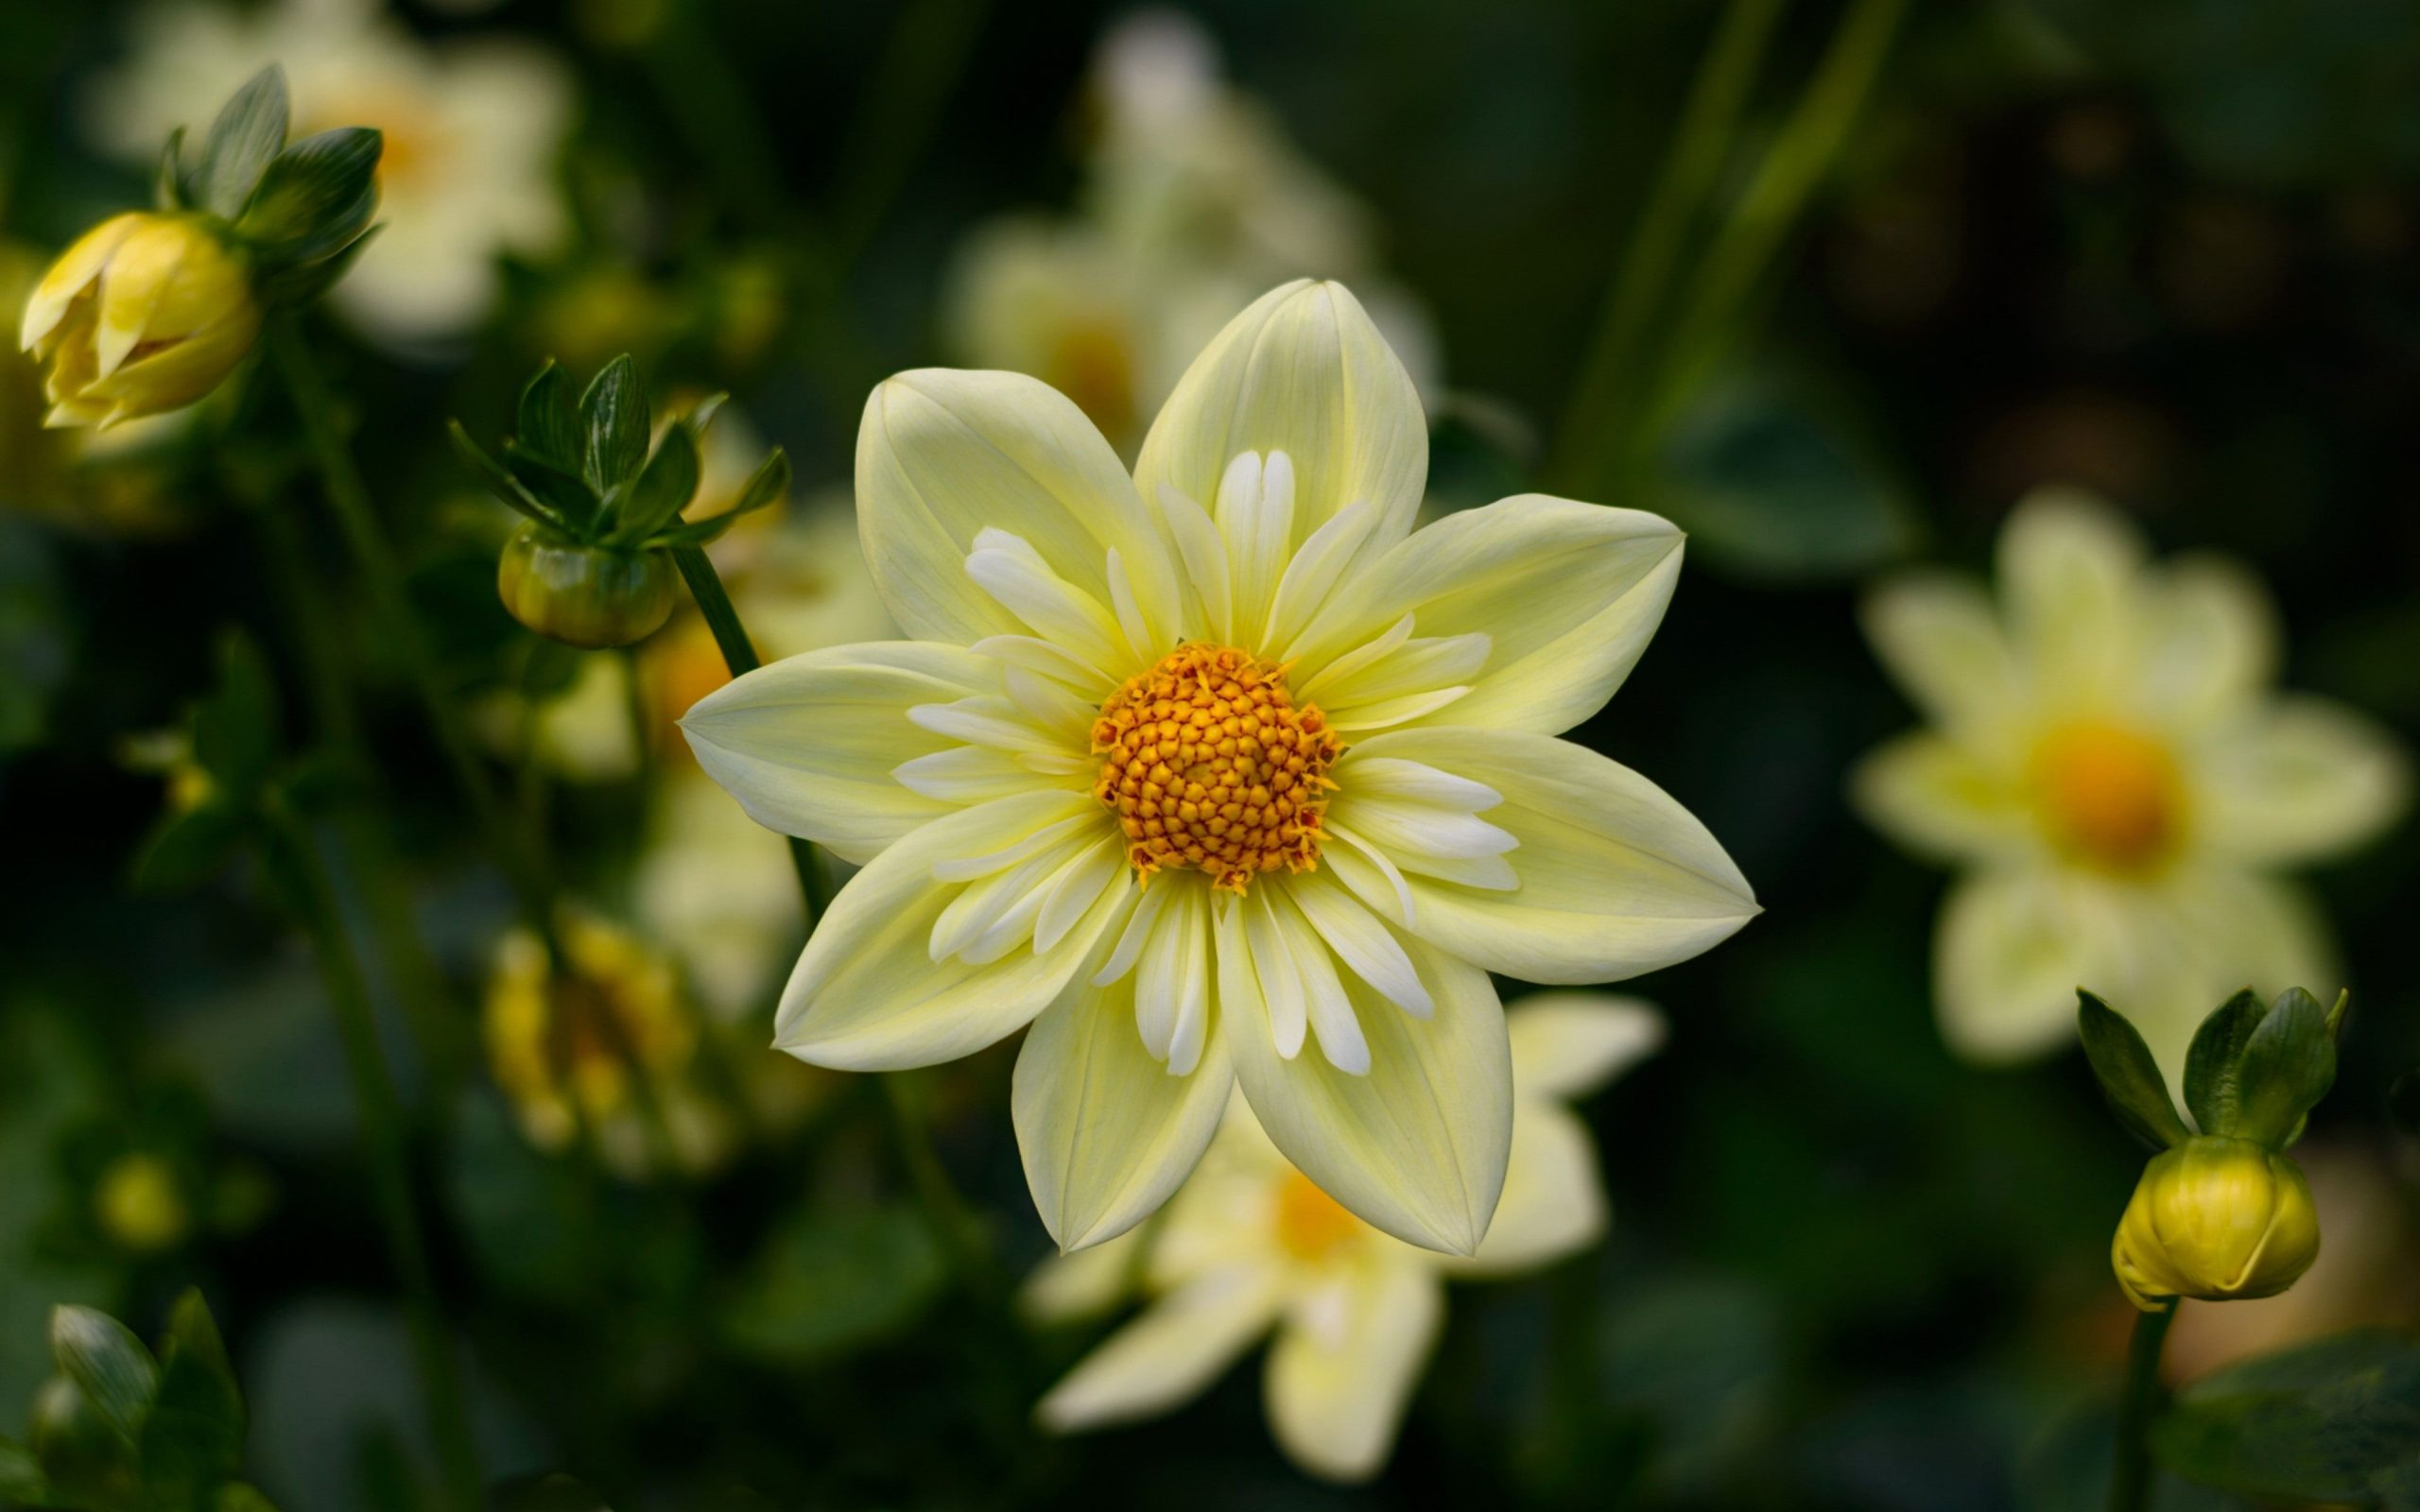 Dahlia Yellow Flowers High Quality Flower Wallpaper For Desktop puters Hd Wallpapers For 4k Ultra Hd Tv 3840×2400 • Wallpaper For You HD Wallpaper For Desktop & Mobile